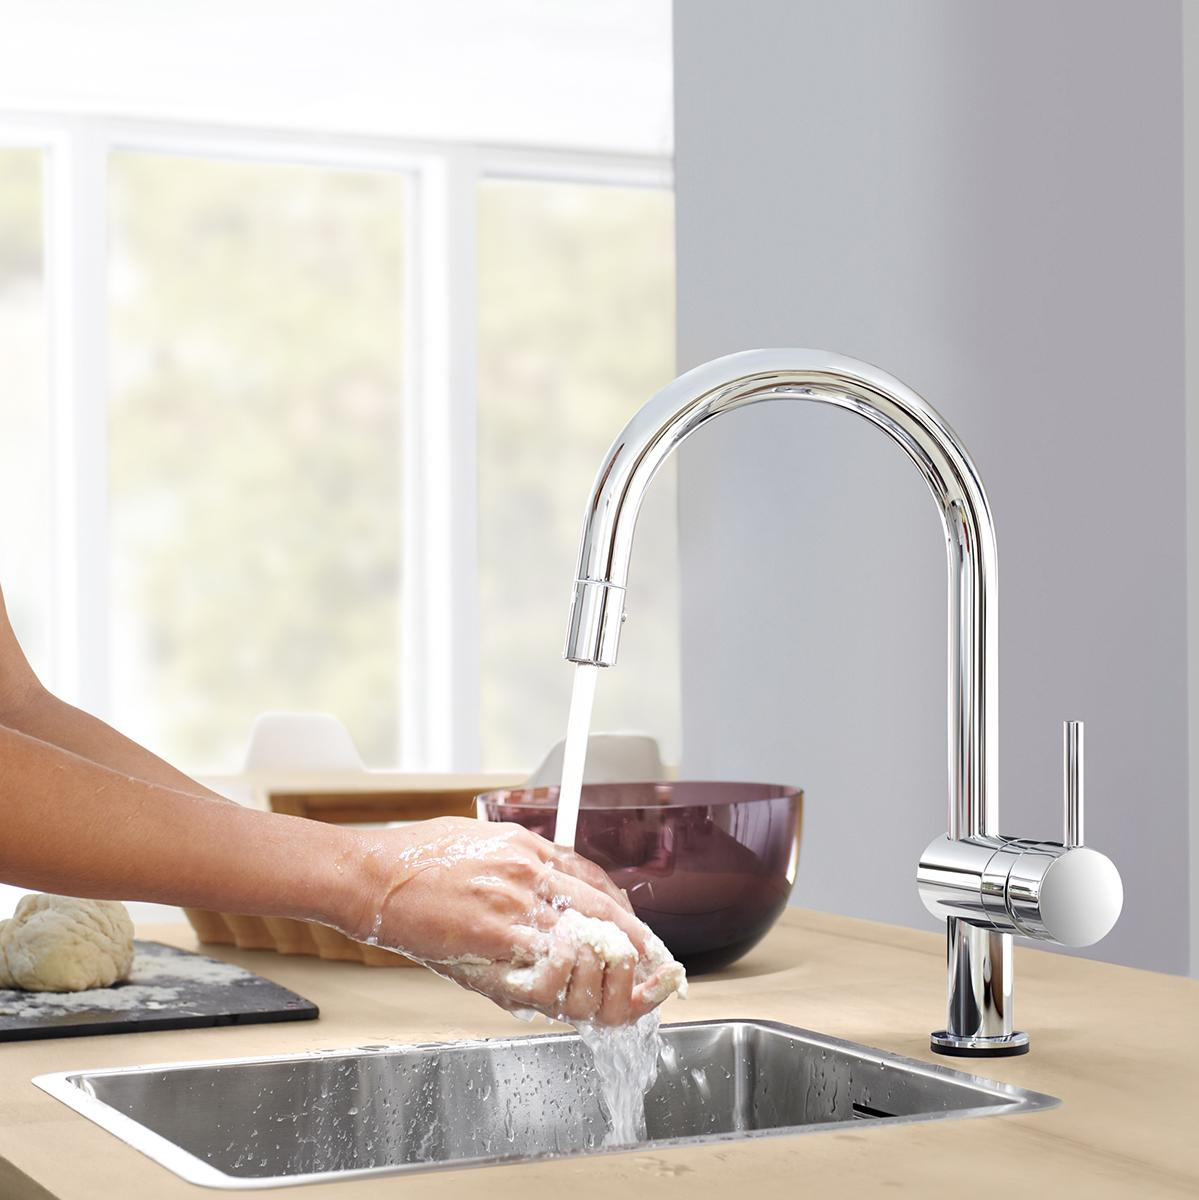 100 amazon grohe kitchen faucets grohe 33870000 bridgeford kitchen pullout faucets - Grohe kitchen faucets amazon ...